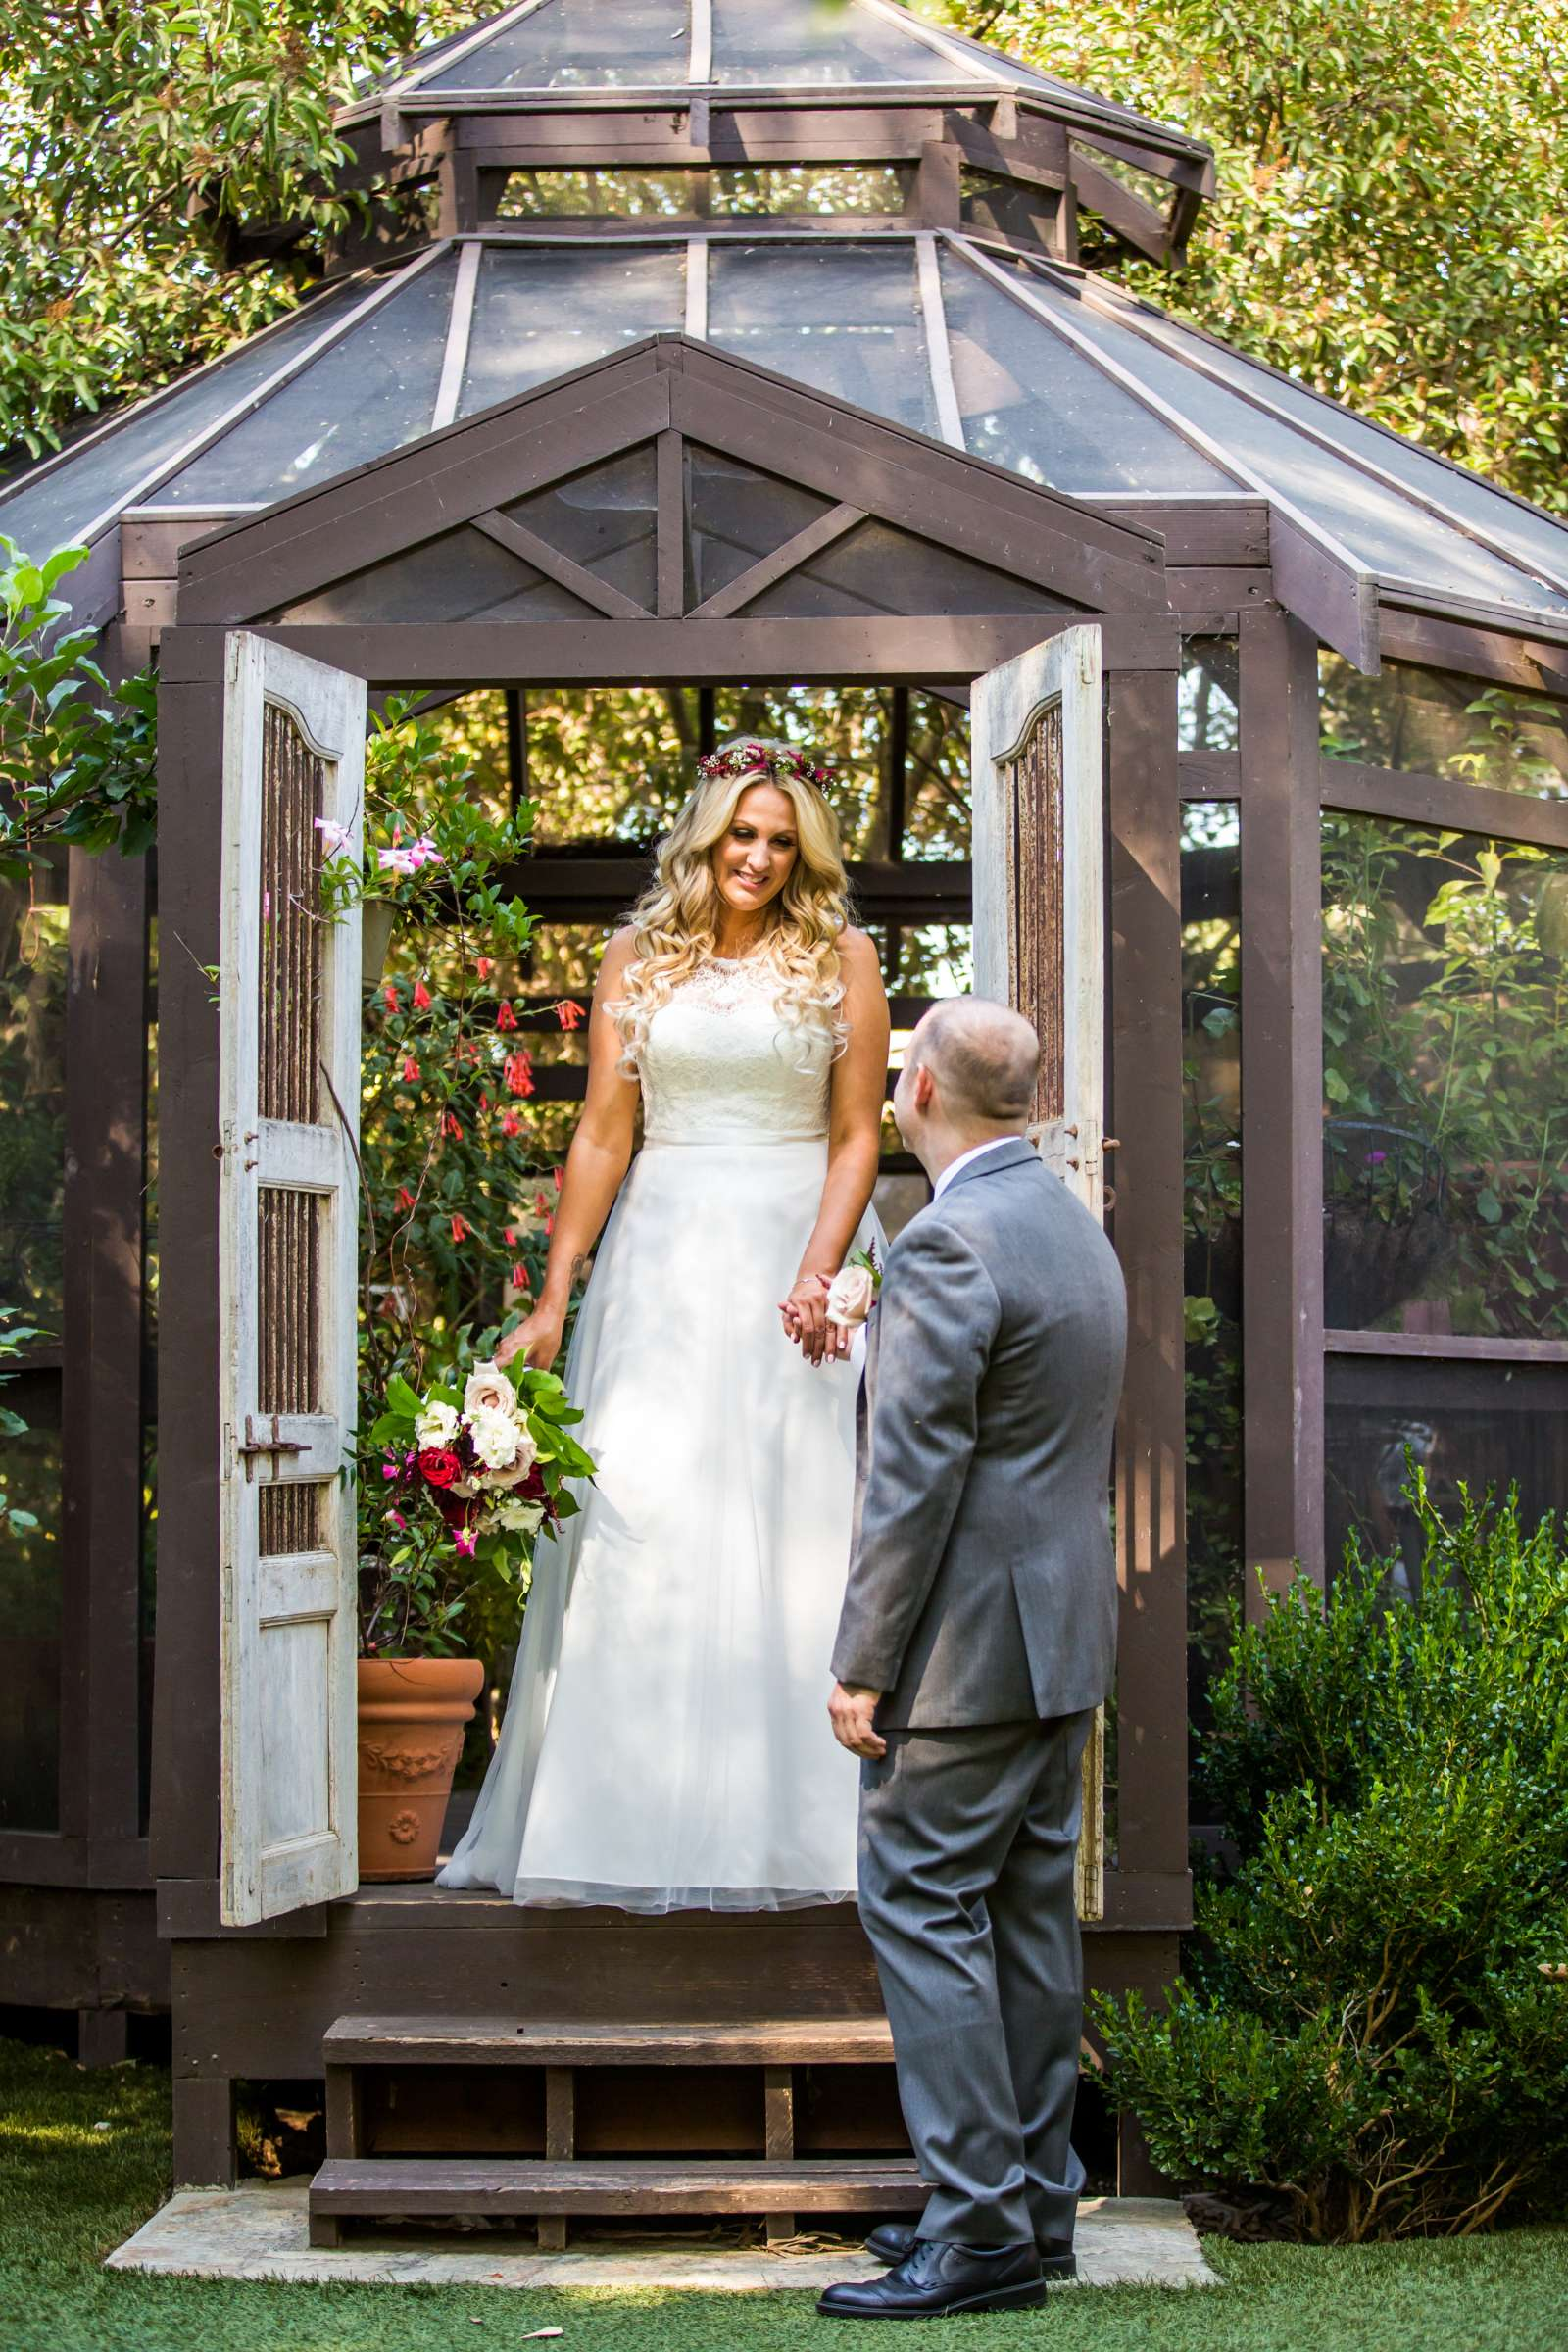 Twin Oaks House & Gardens Wedding Estate Wedding, Brittany and Sean Wedding Photo #39 by True Photography